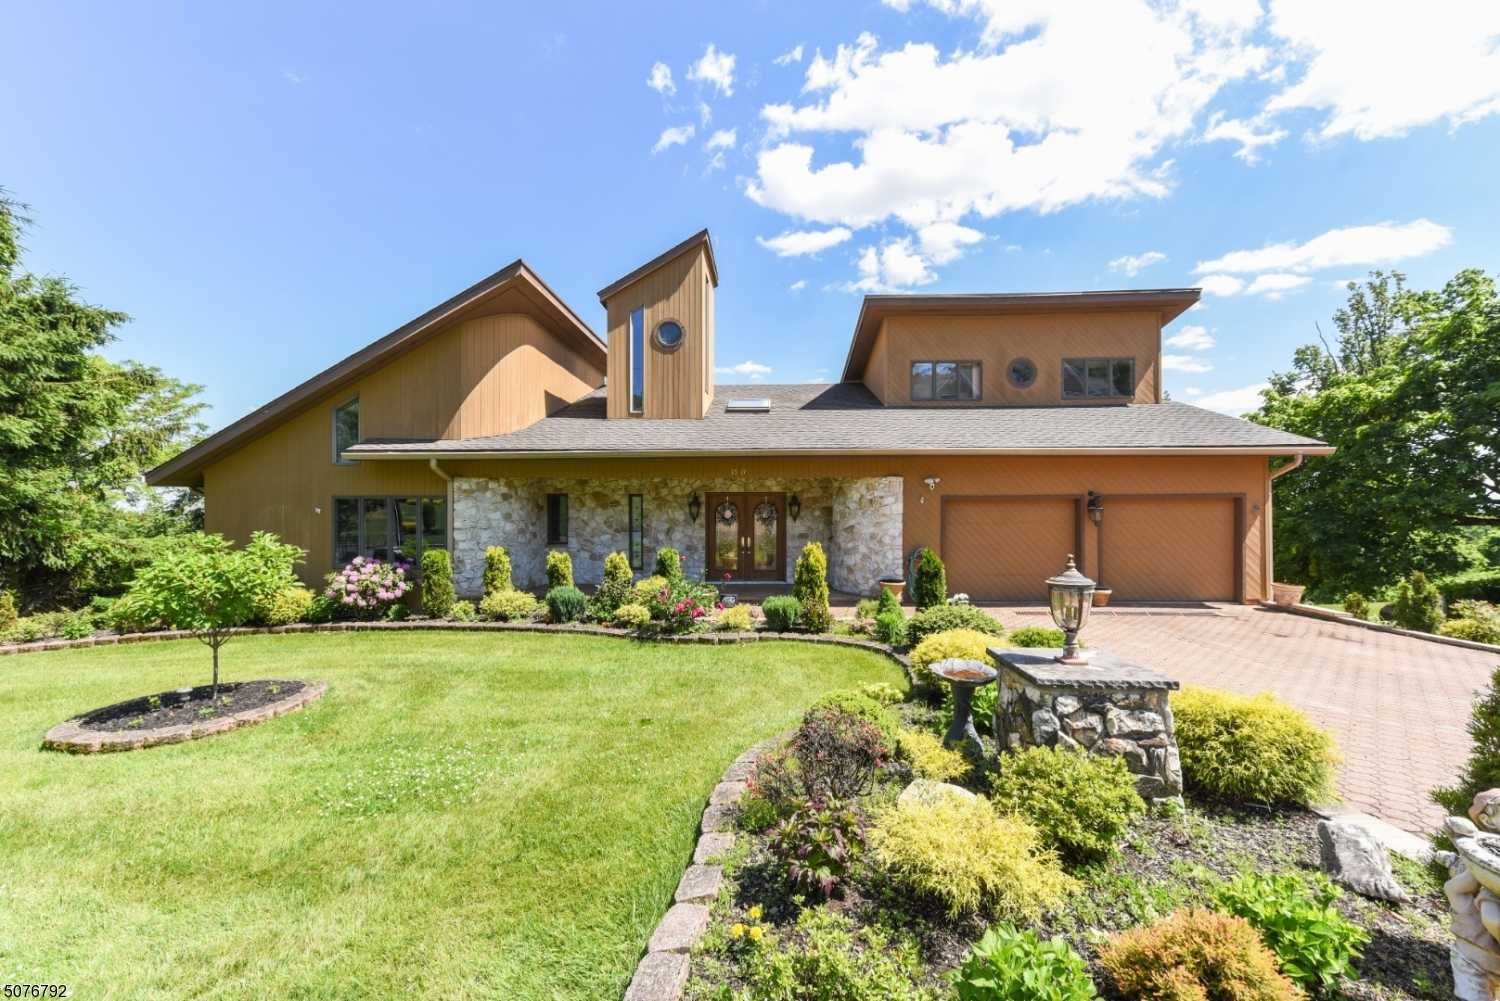 $1,295,000 - 9Br/7Ba -  for Sale in Mountainside Boro